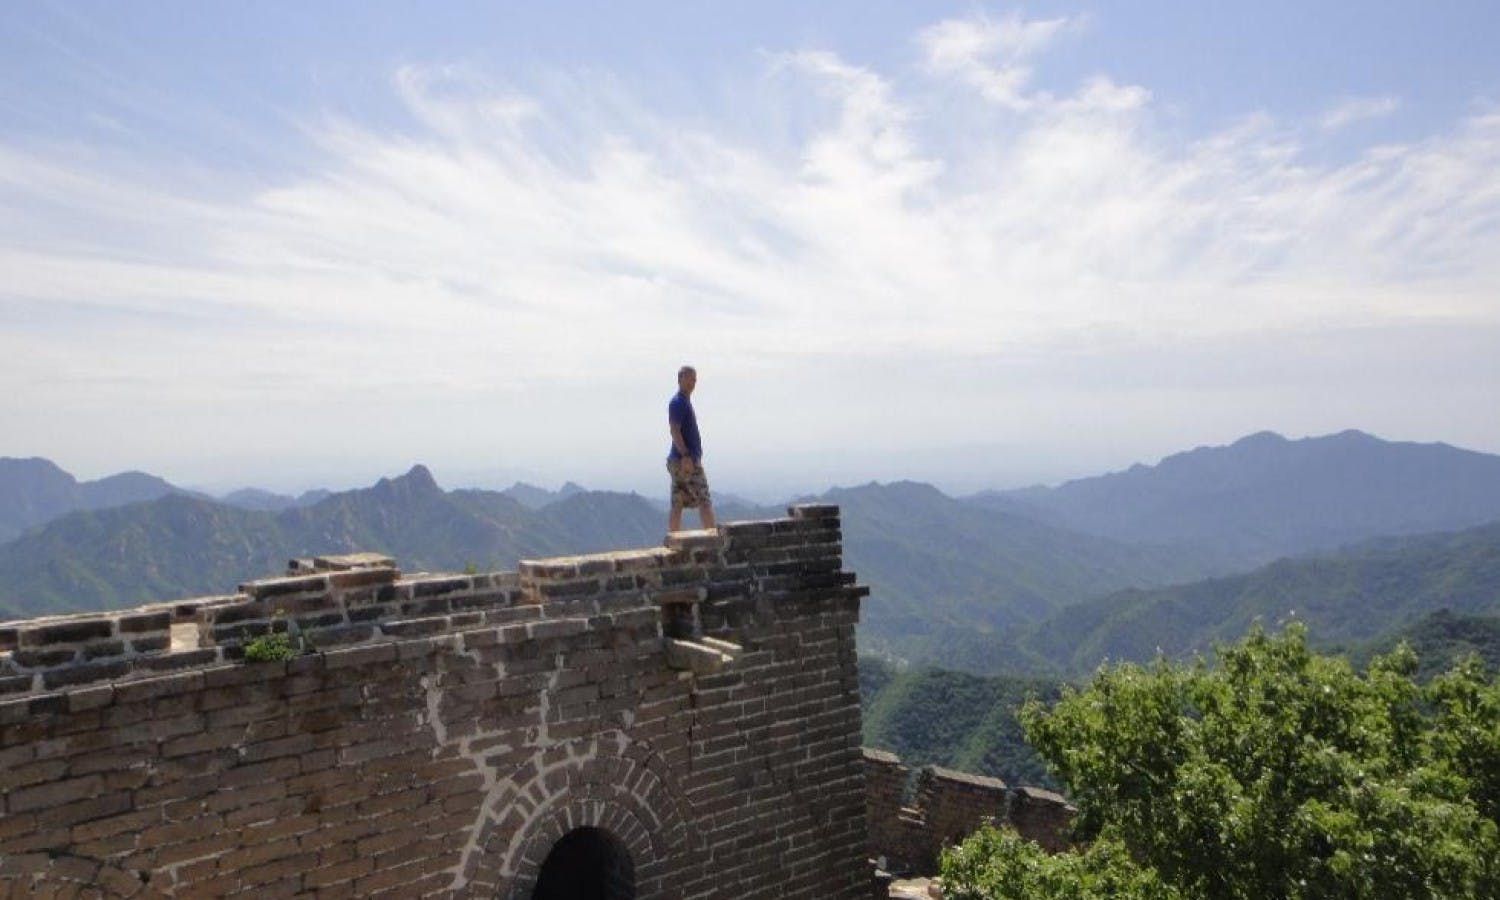 Guided walking tour of the Great Wall of China